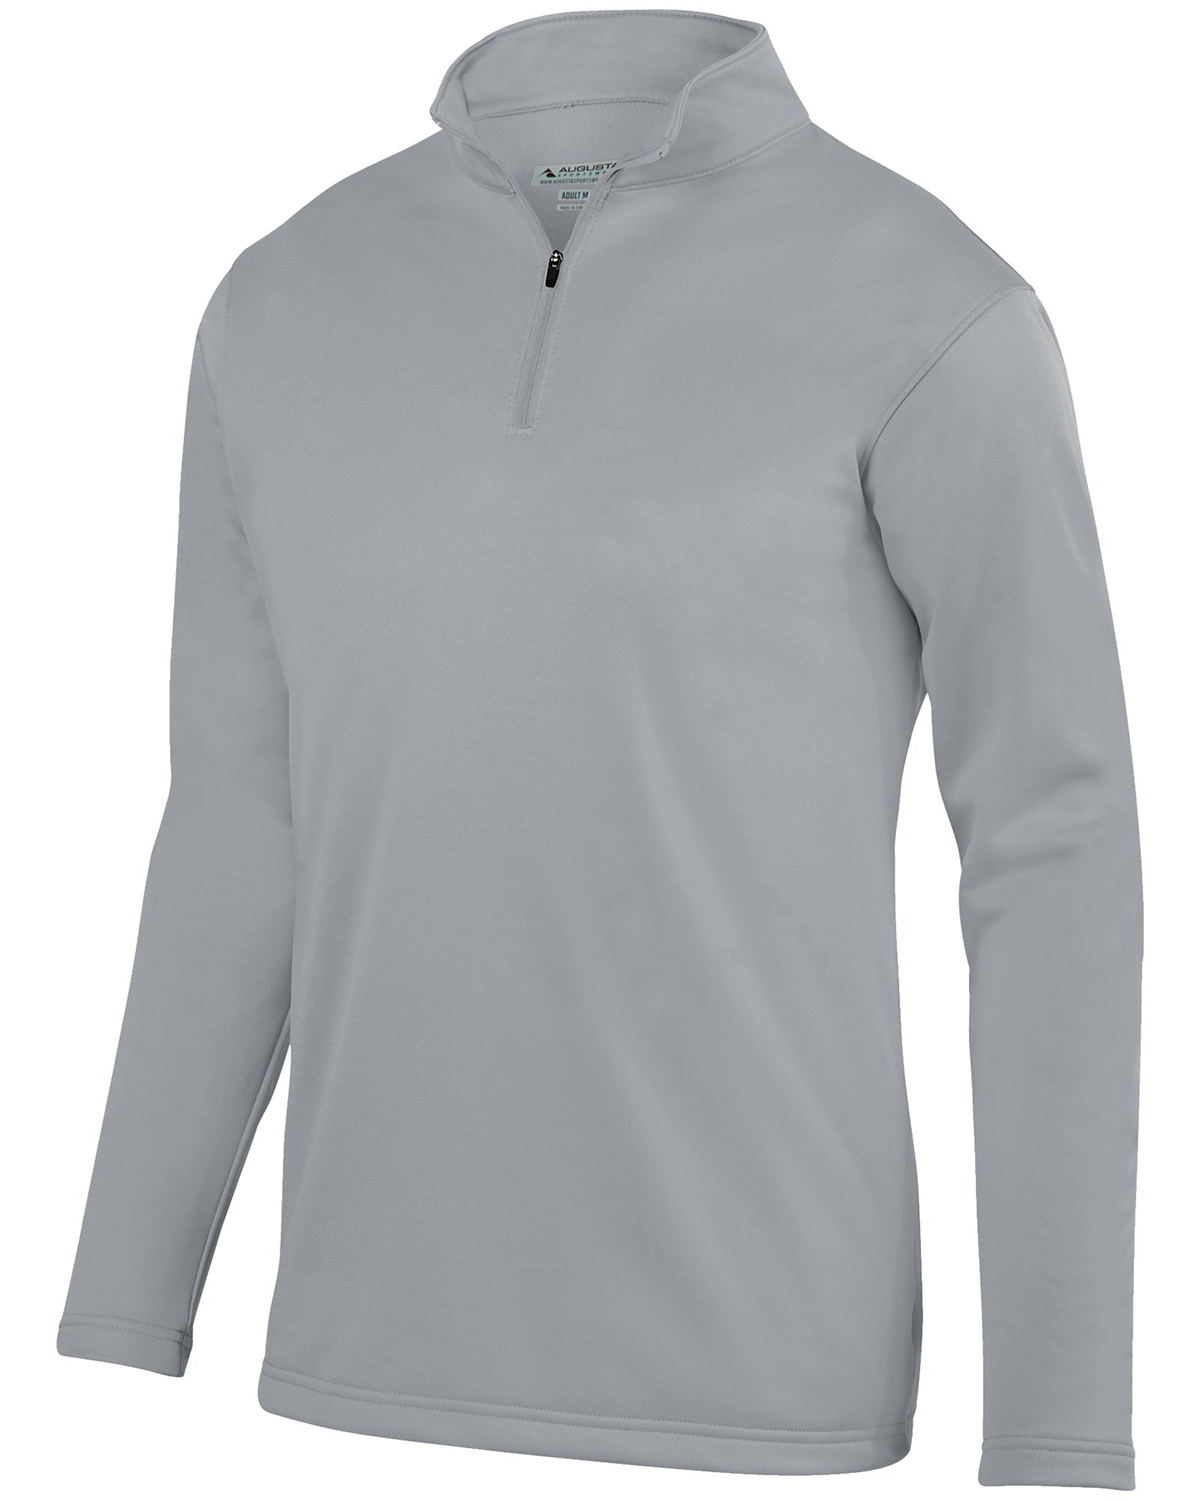 Augusta Drop Ship AG5507 - Adult Wicking Fleece Quarter-...